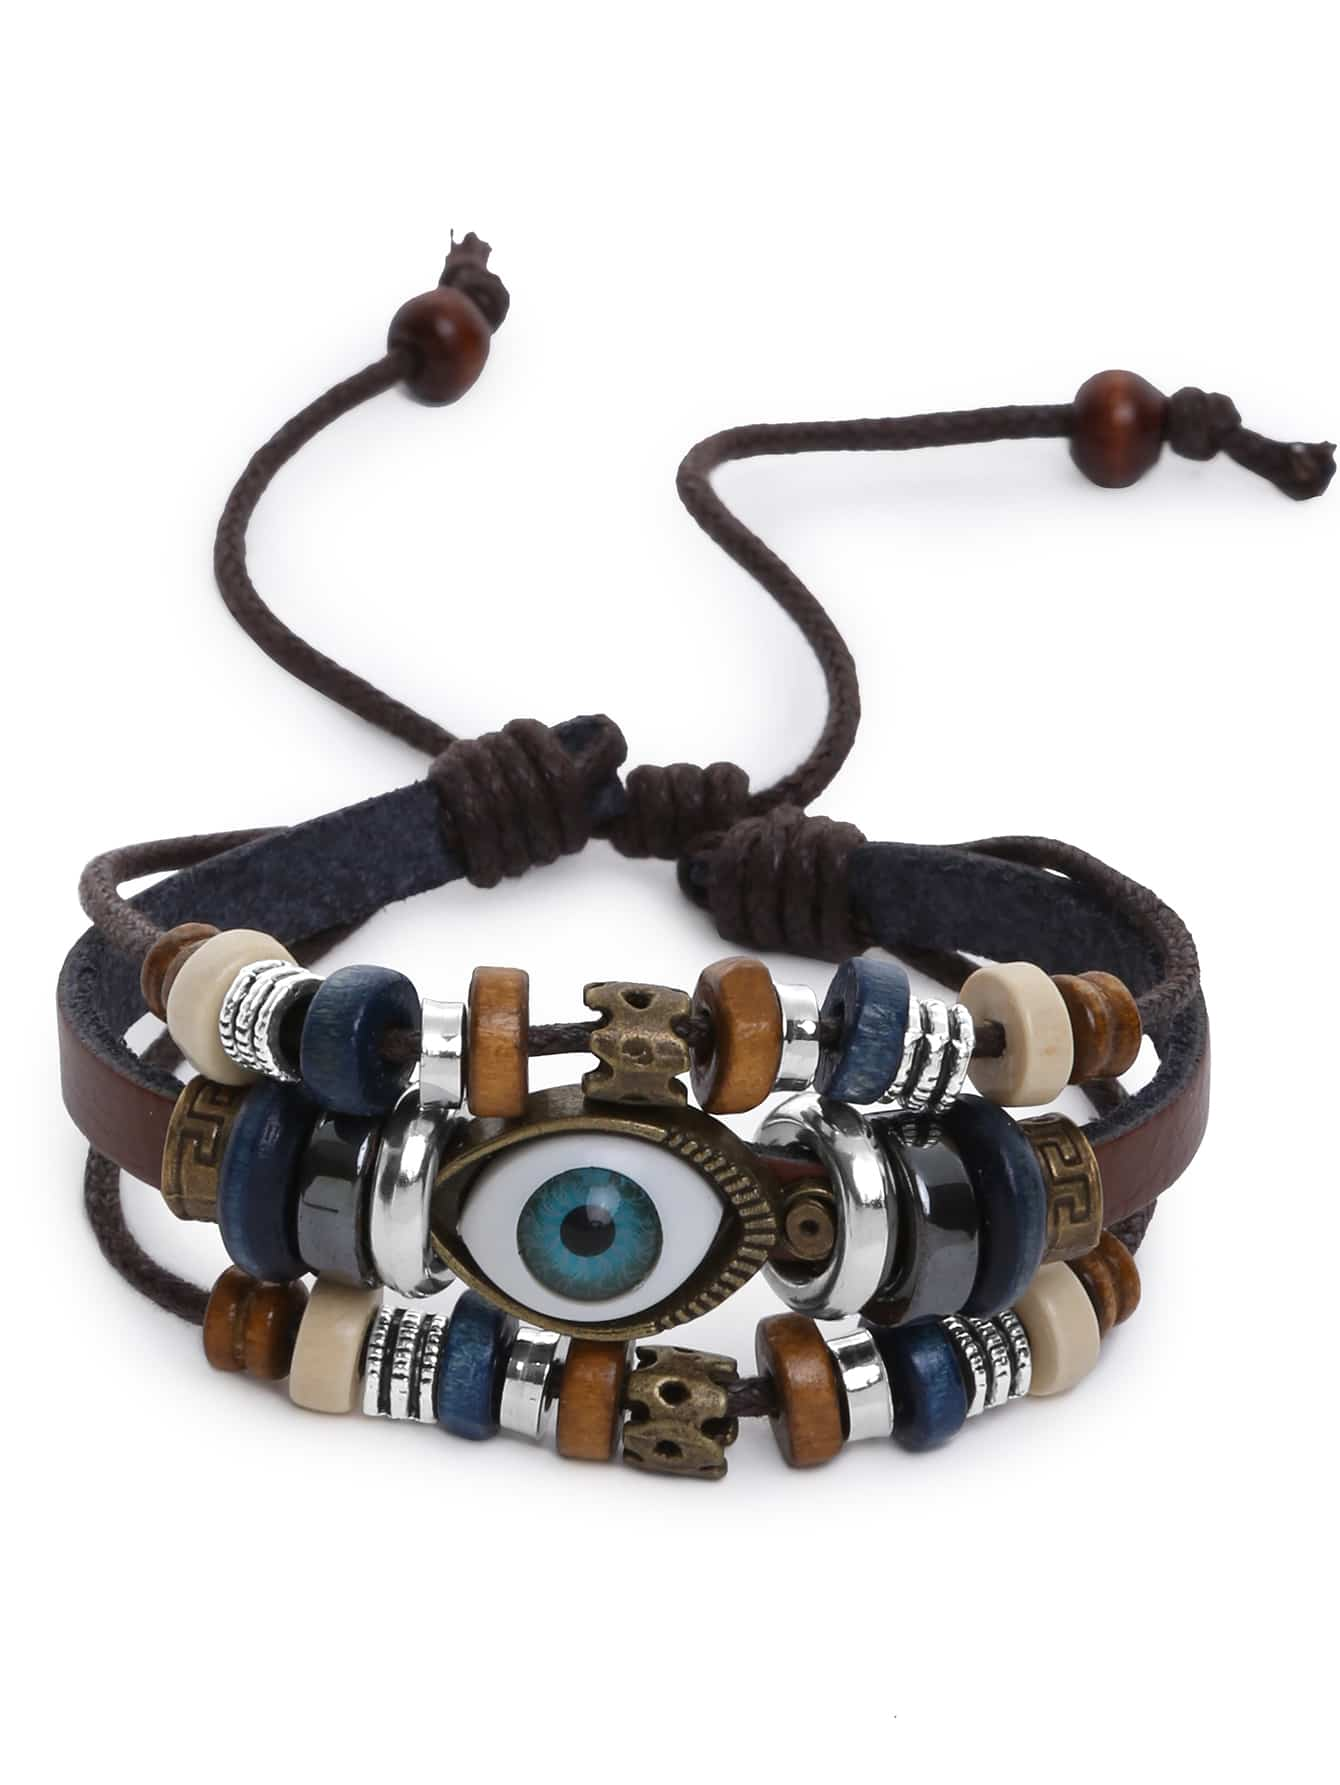 Eye Shaped Beaded Multilayer BraceletEye Shaped Beaded Multilayer Bracelet<br><br>color: Colorful<br>size: None